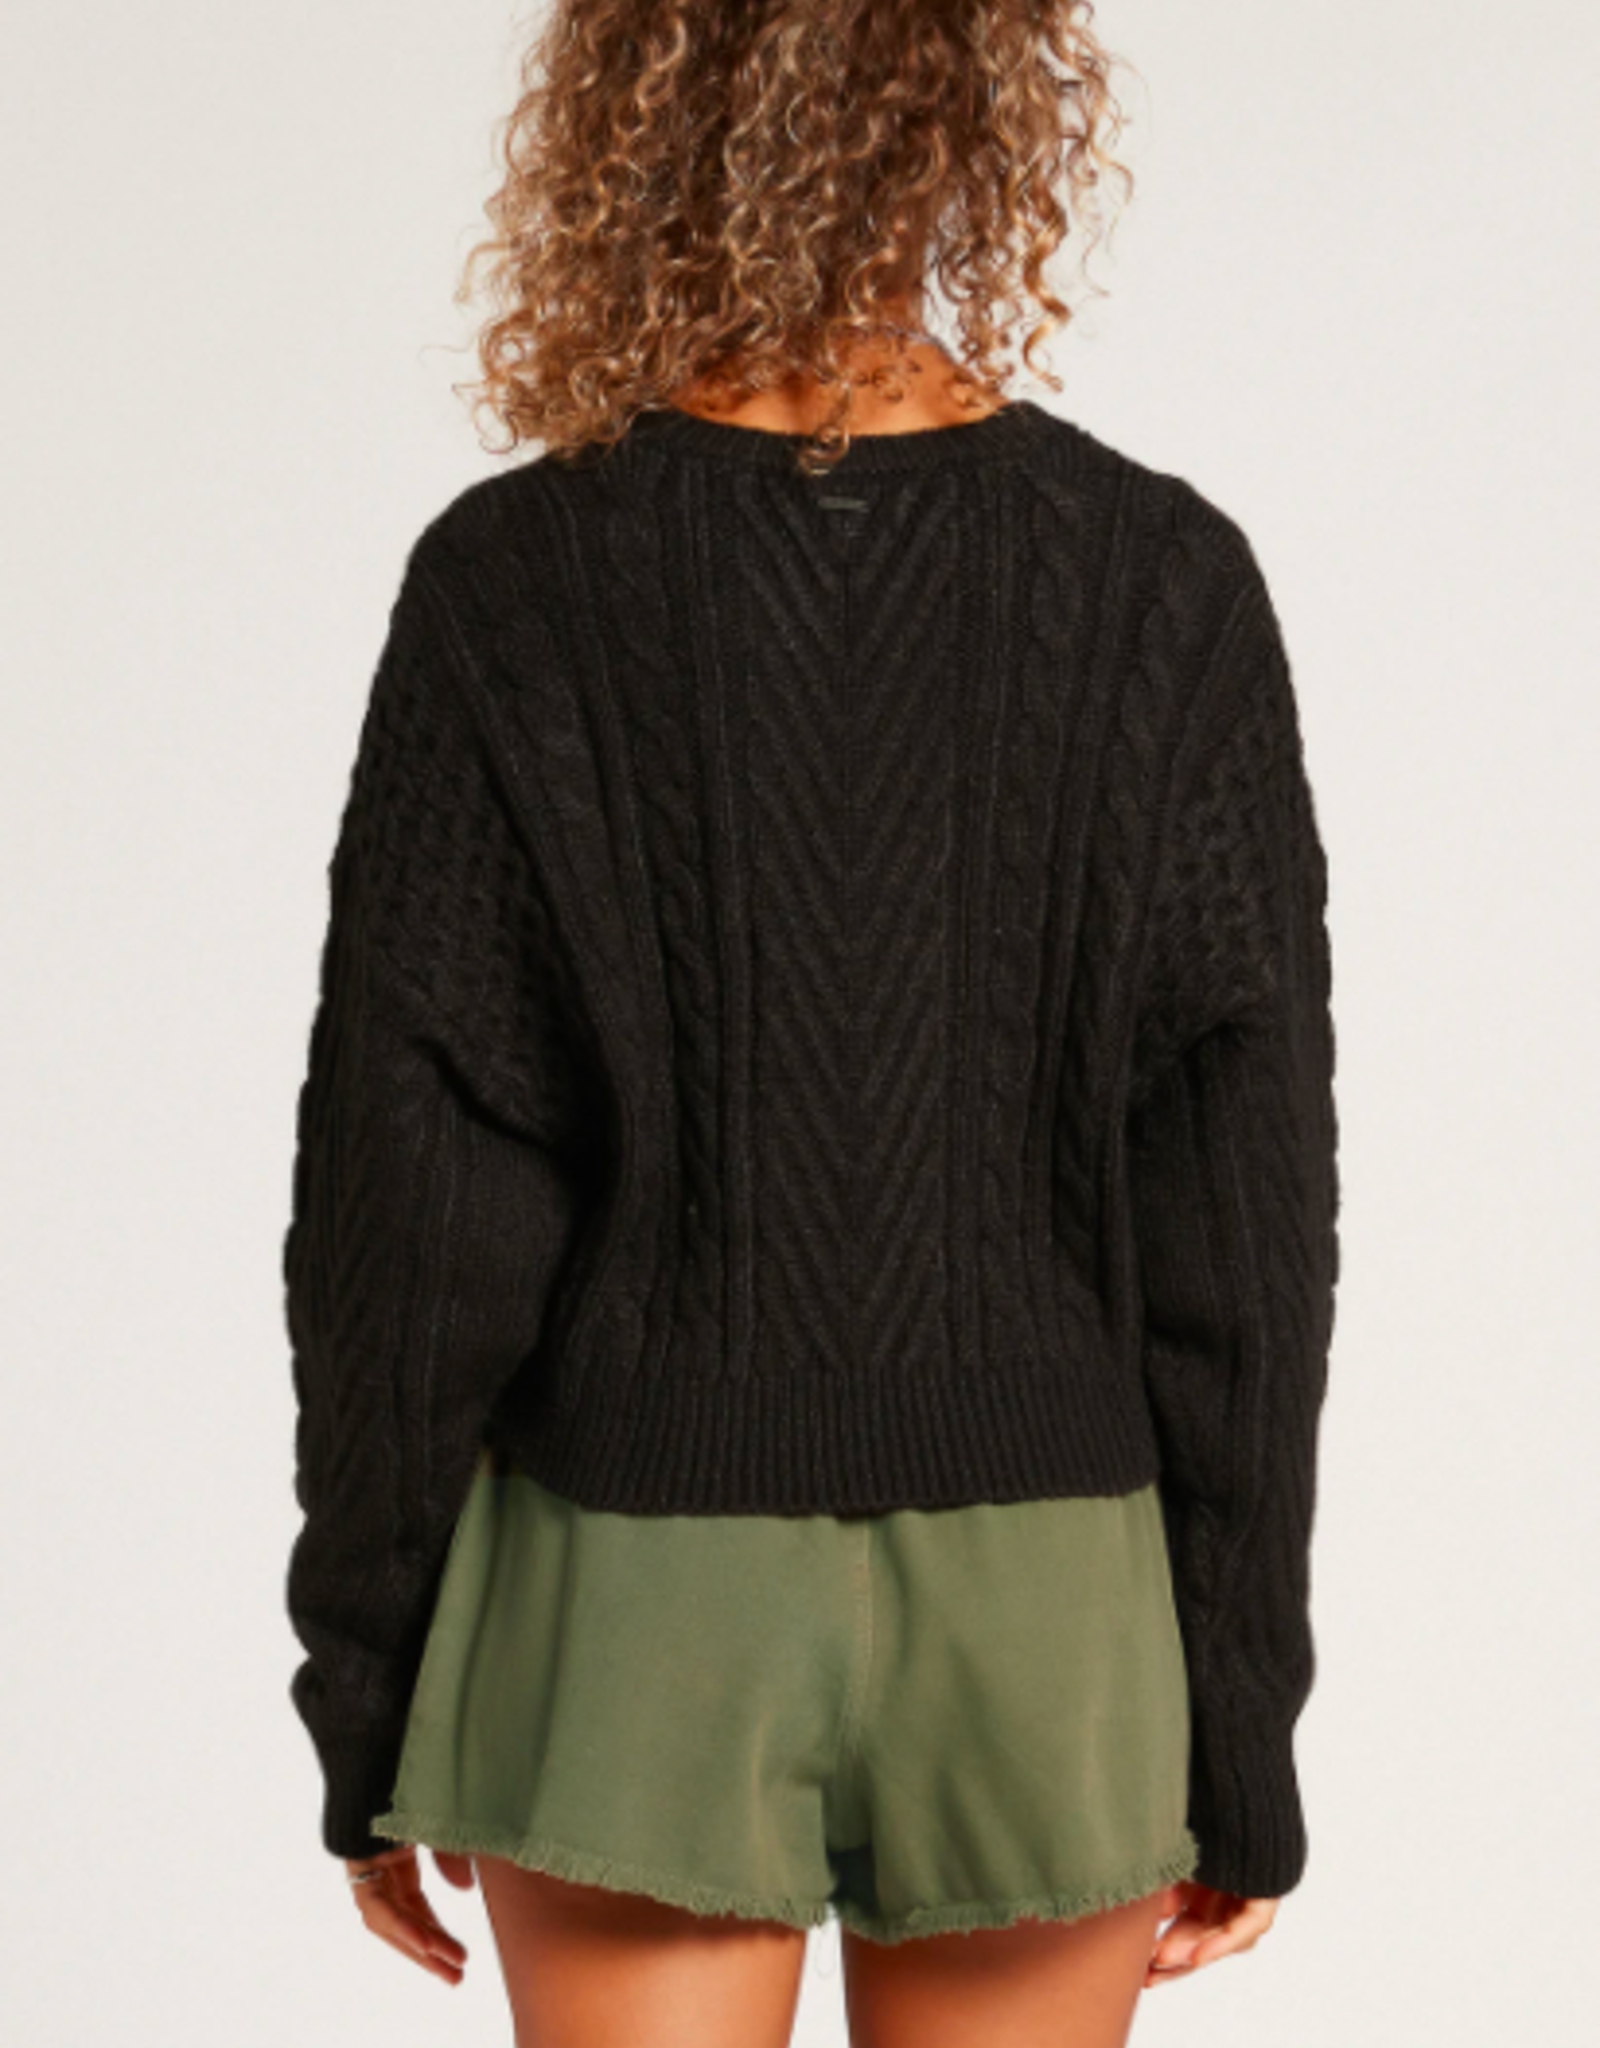 Volcom Women's Cabled Babe Sweater